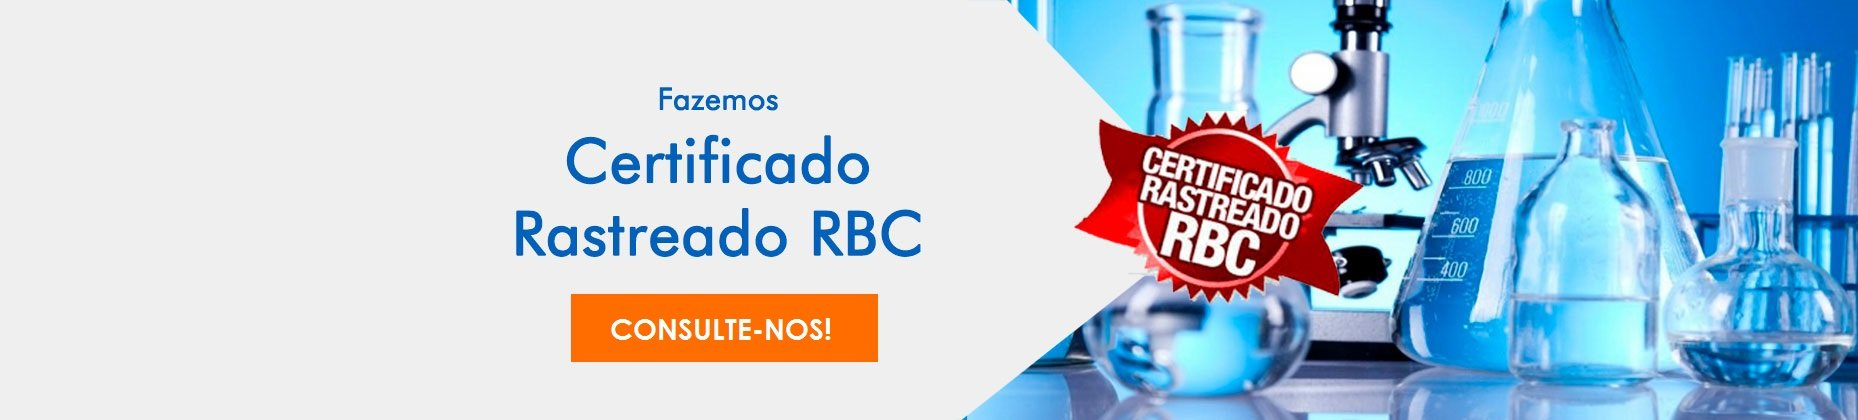 Certificado rastreado rbc